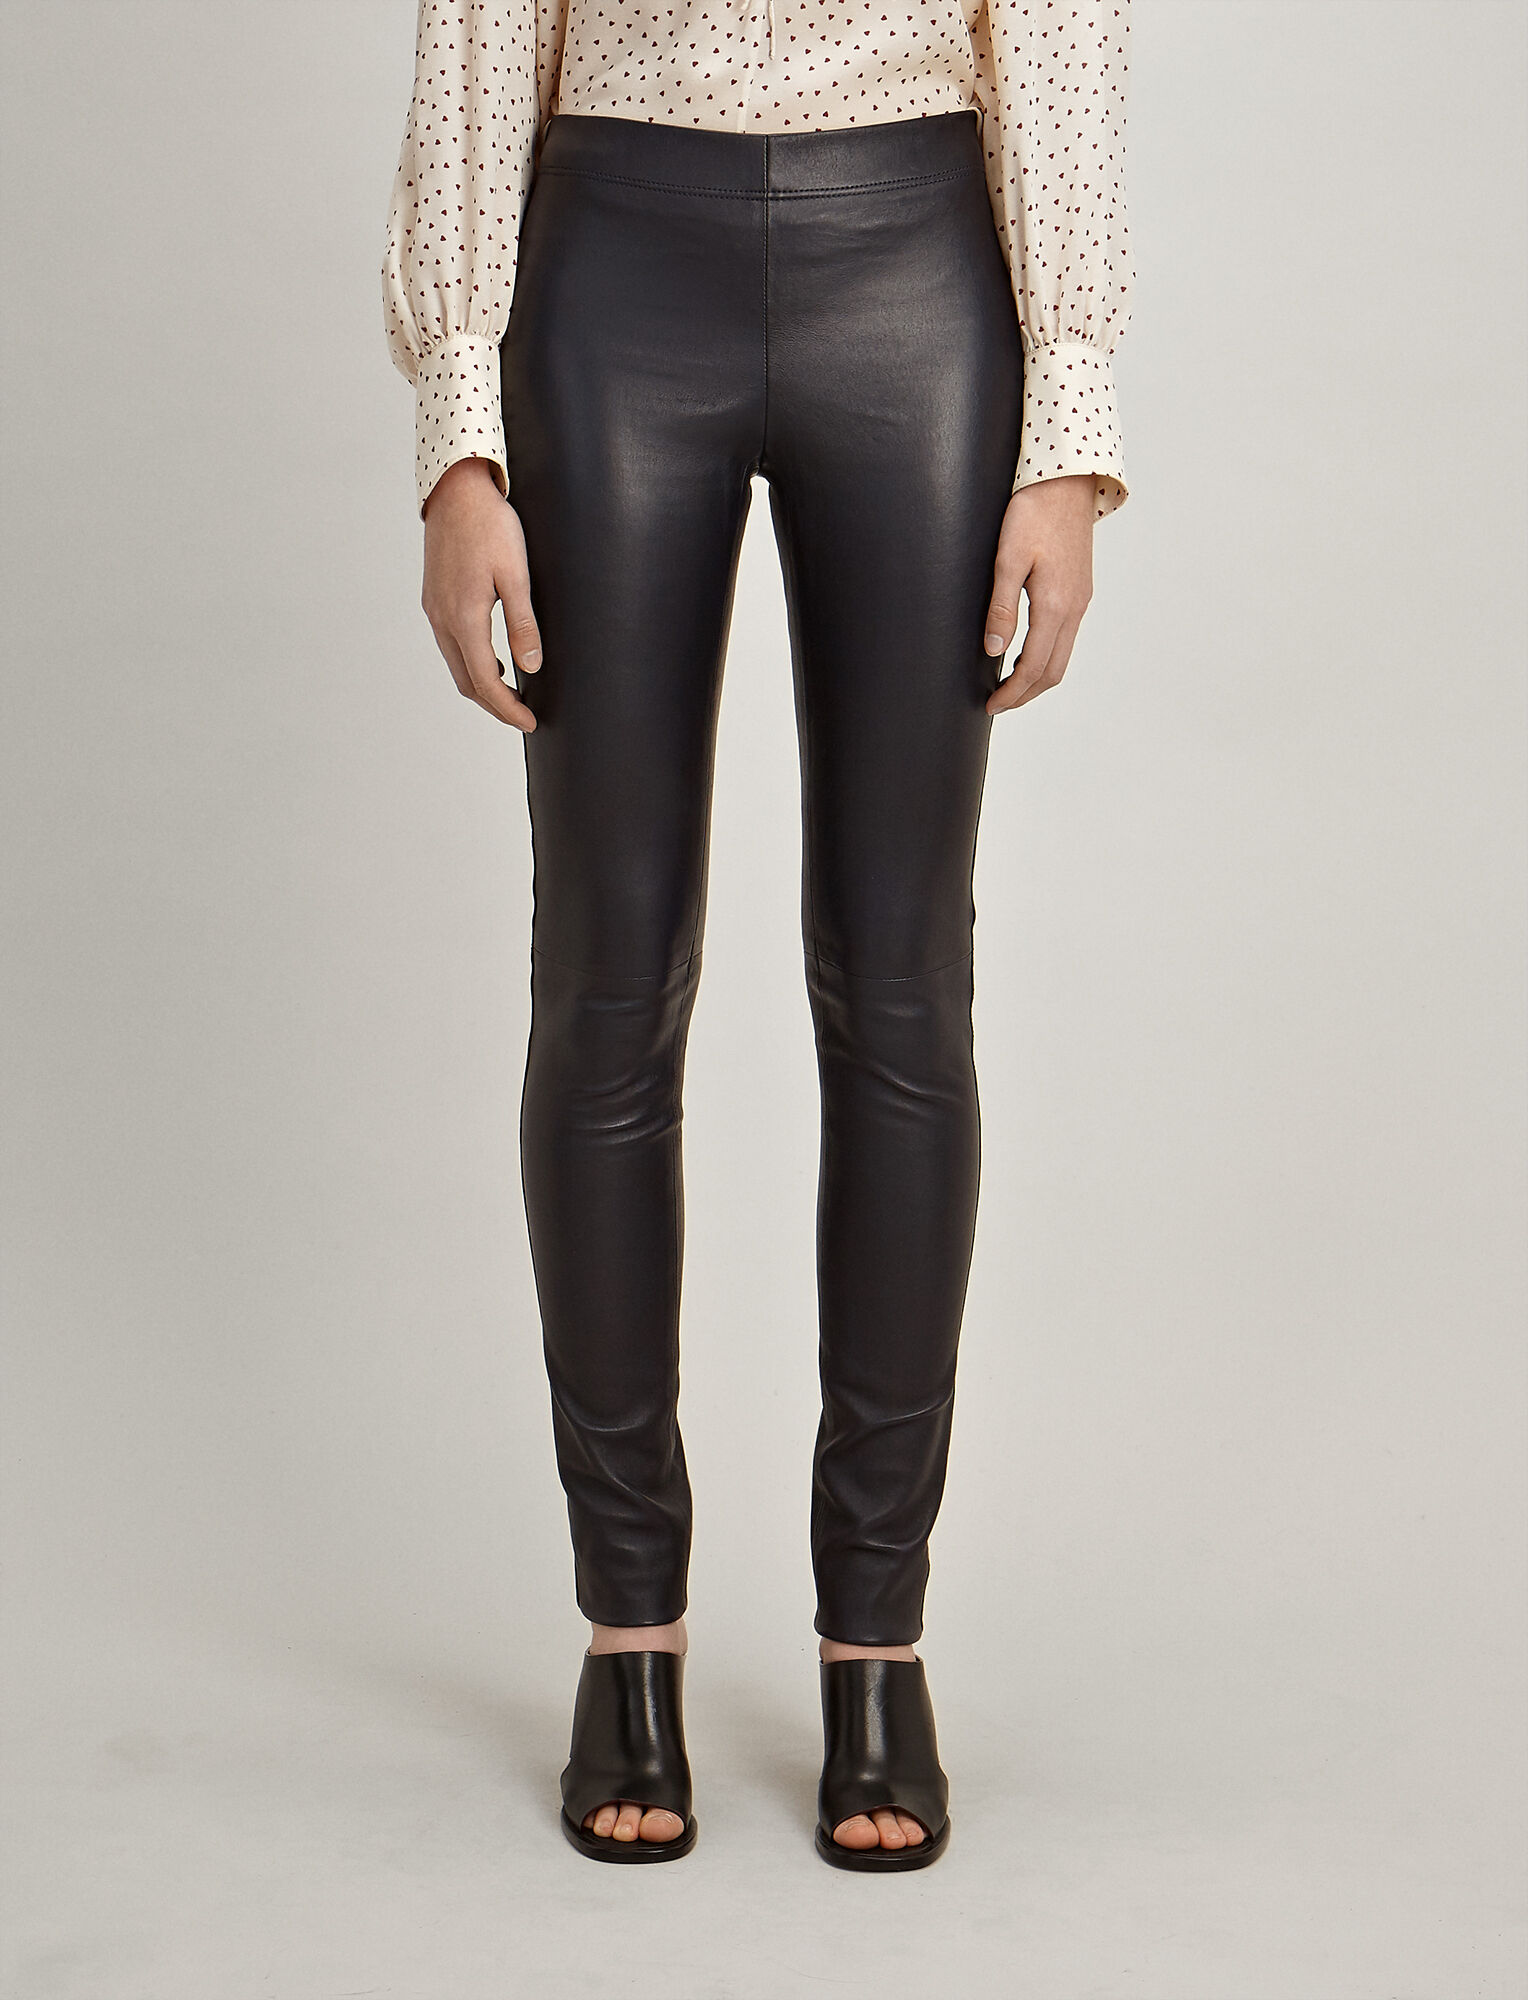 legging-style trousers - Brown Joseph